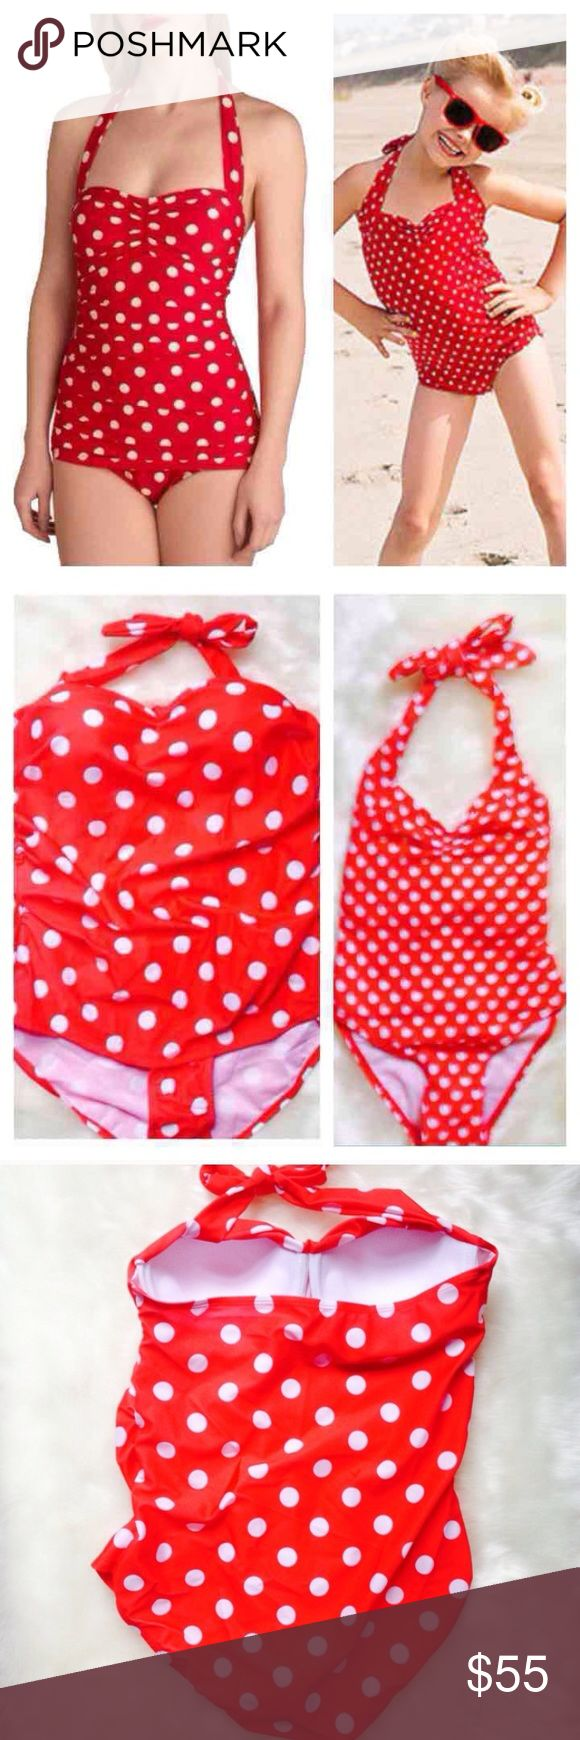 """Mommy & Me Matching Polka Dot Swimsuits Mom Size M Adorable matching swimsuits to make summer extra cute for you and your little one.  ***Includes BOTH suits. 🍒Mom suit details: *Made of 80% Acrylic, 20% Spandex.  *Has built in padded bust cups, underwire.  *Halter ties around neck.  *Measurements are as follows: LARGE Bust 32-34"""" Waist 24-25"""" Hips 34-36"""" Length from top of bust to crotch 25"""". Tag says L but  fits more like M.  🍒Toddler suit details: *Measurements:Chest 20"""" Hips 20"""" (2…"""